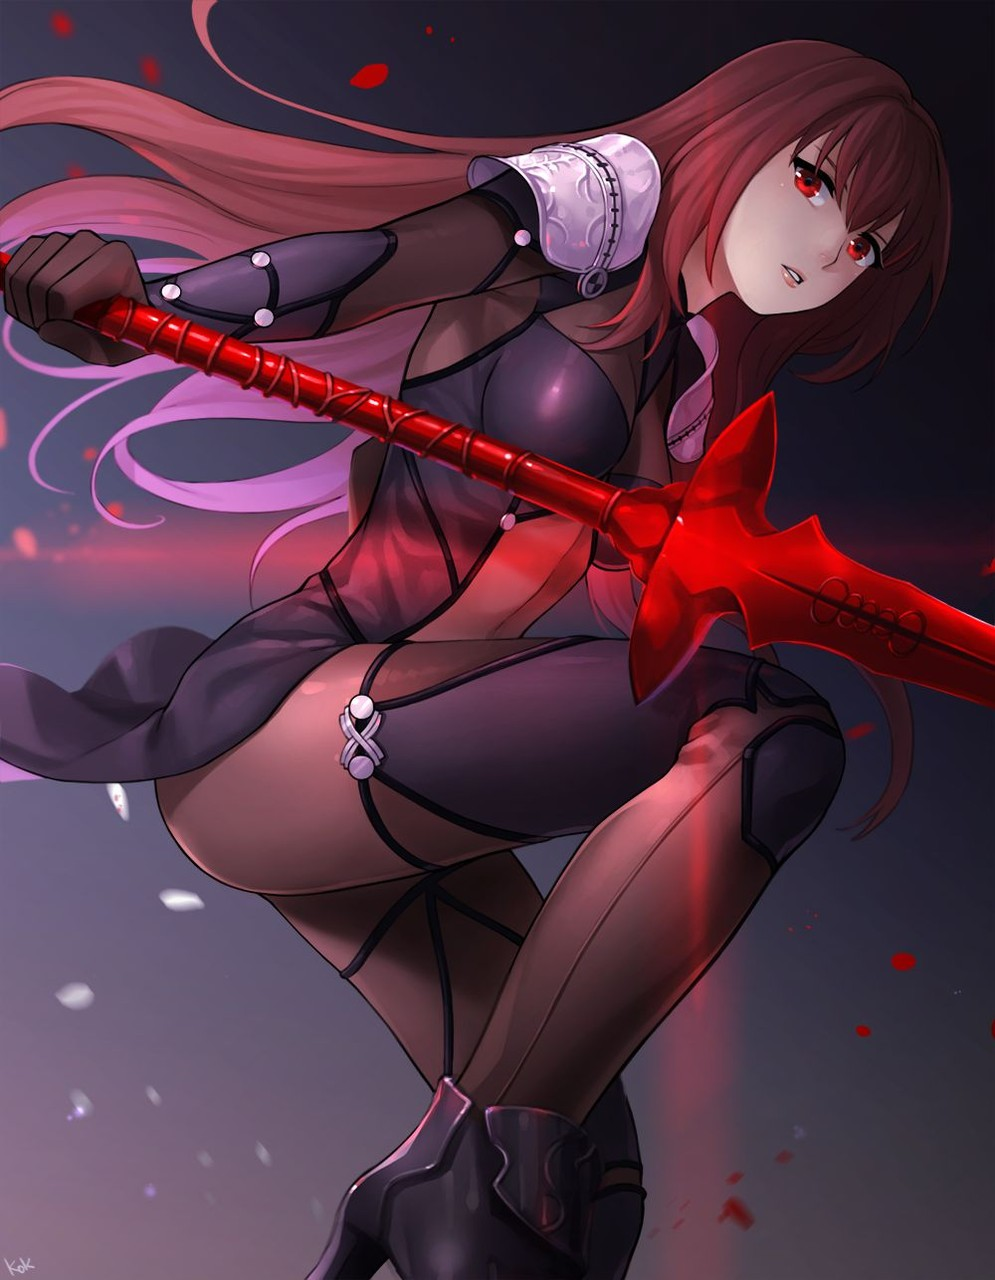 scathach_(fategrand_order)116